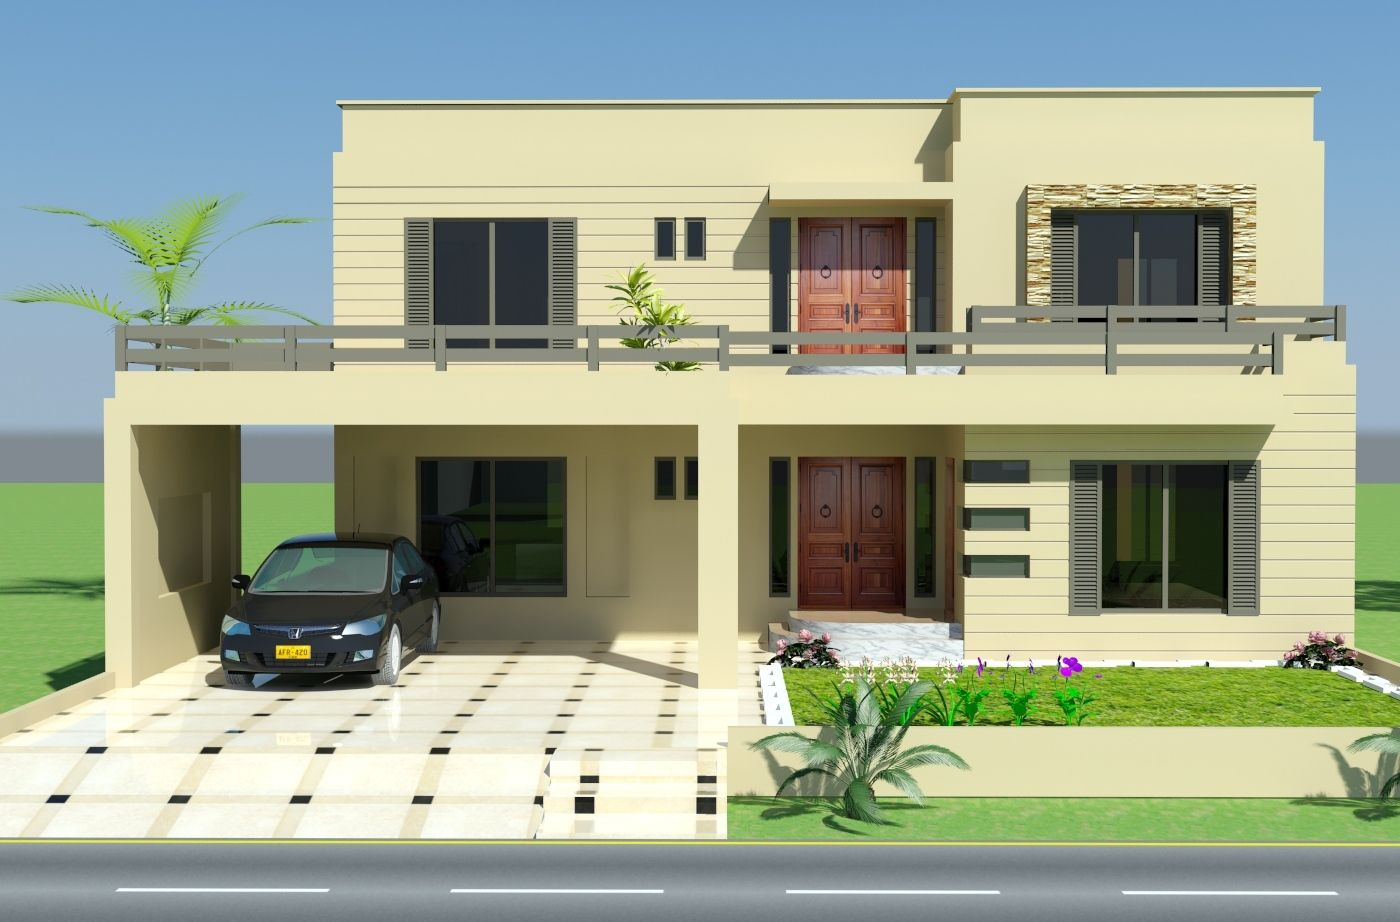 Exterior house design front elevation mi futura casa for Modern house front view design